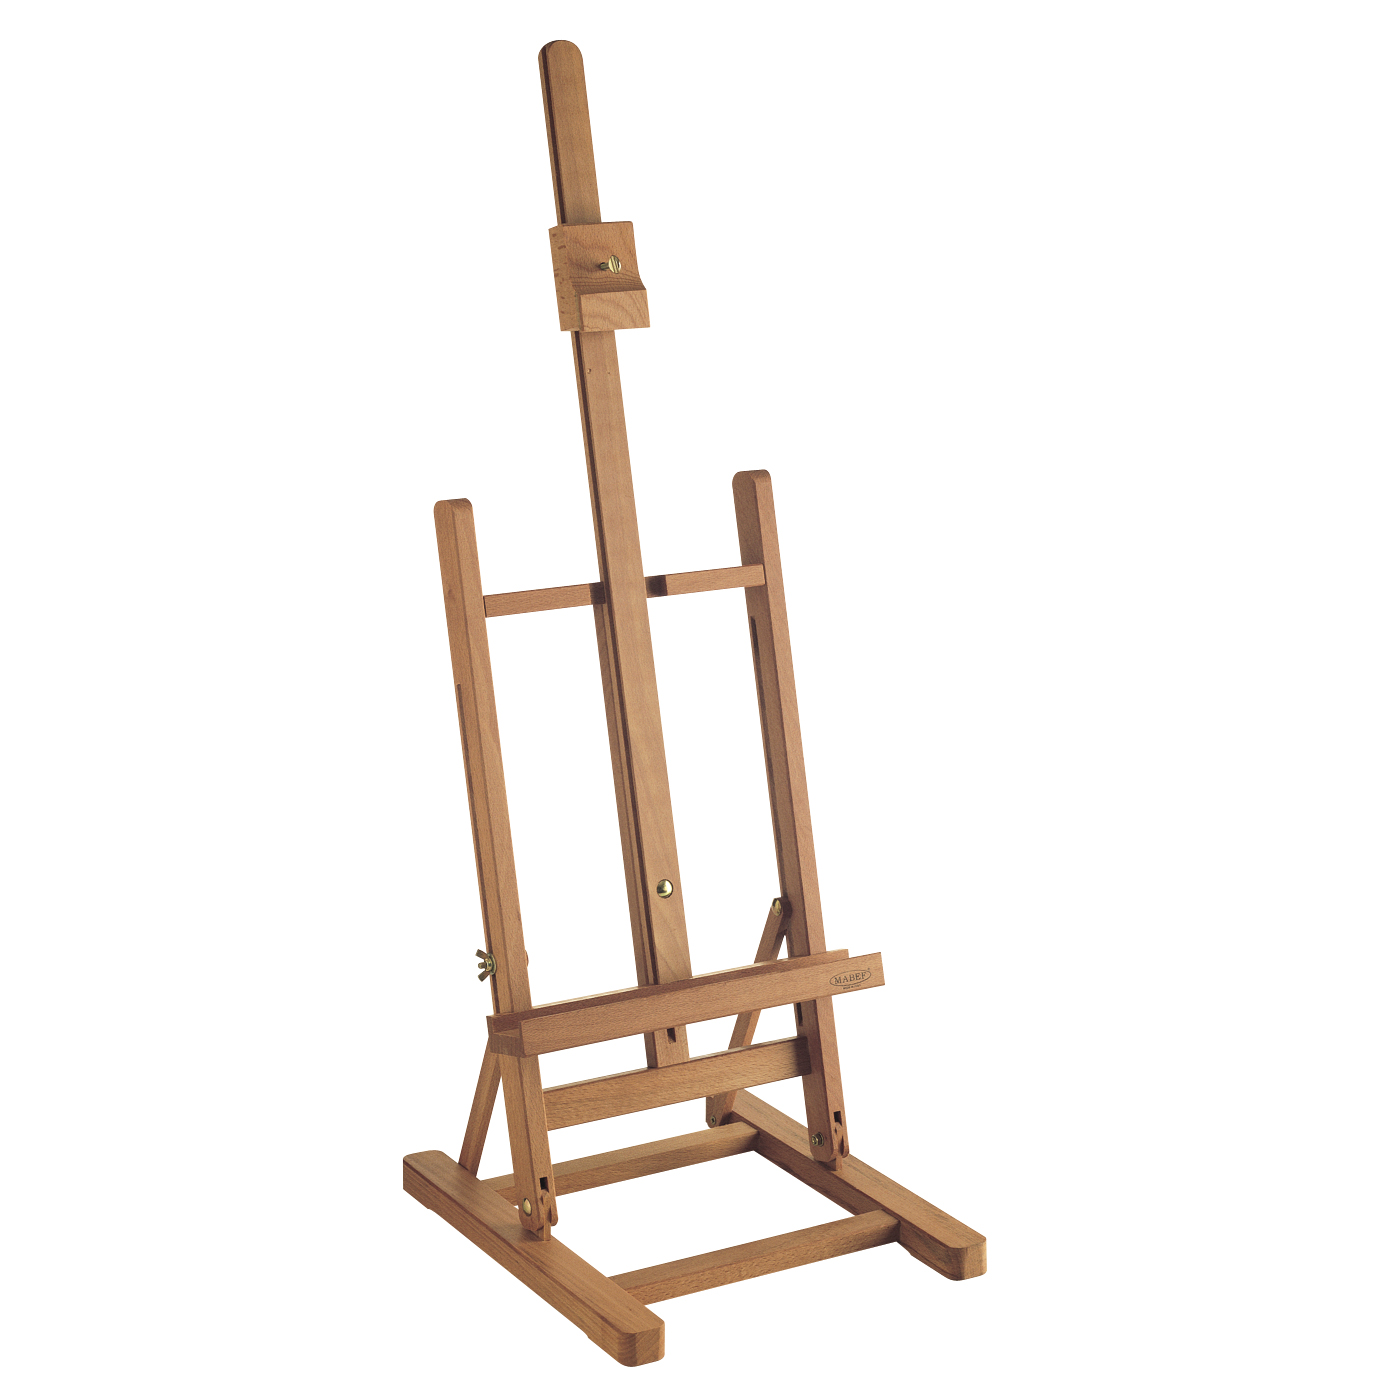 mabef basic table easel - Table Top Easel